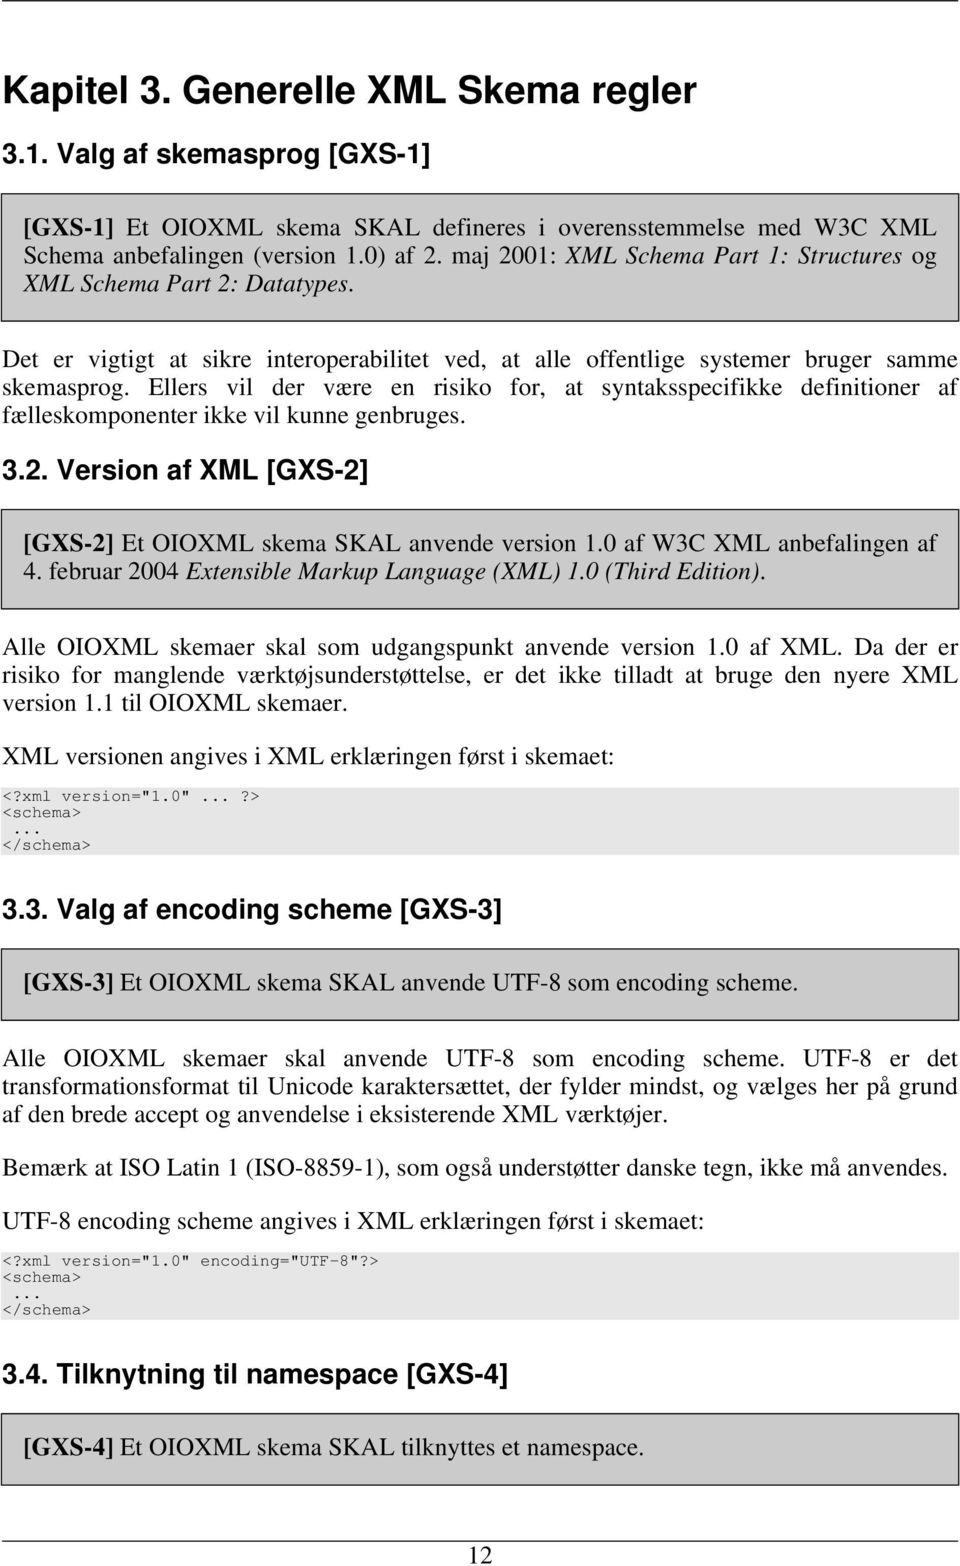 Ellers vil der være en risiko for, at syntaksspecifikke definitioner af fælleskomponenter ikke vil kunne genbruges. 3.2. Version af XML [GXS-2] [GXS-2] Et OIOXML skema SKAL anvende version 1.